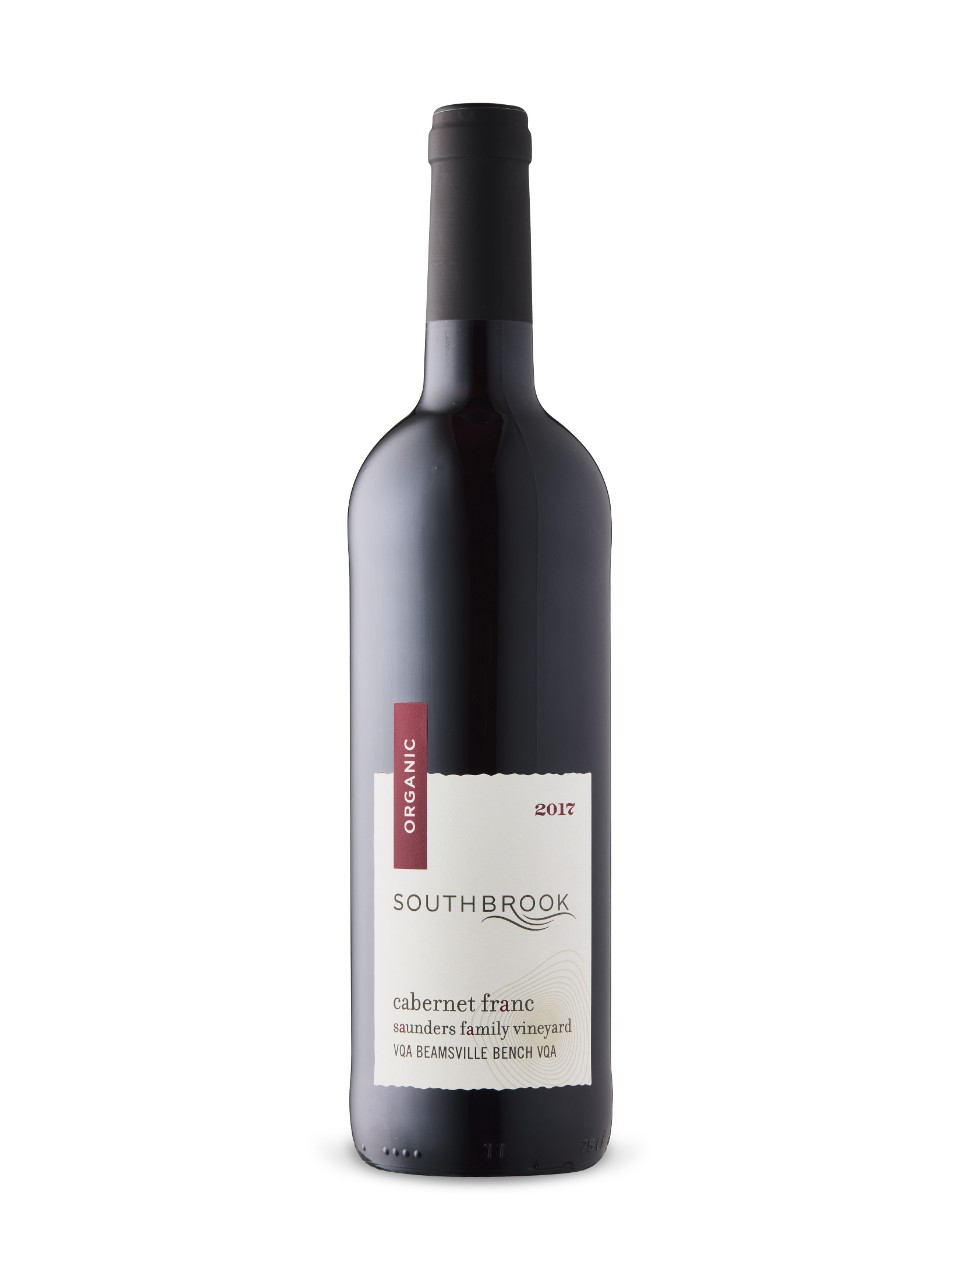 Southbrook Saunders Family Vineyard Cabernet Franc 2017 from LCBO